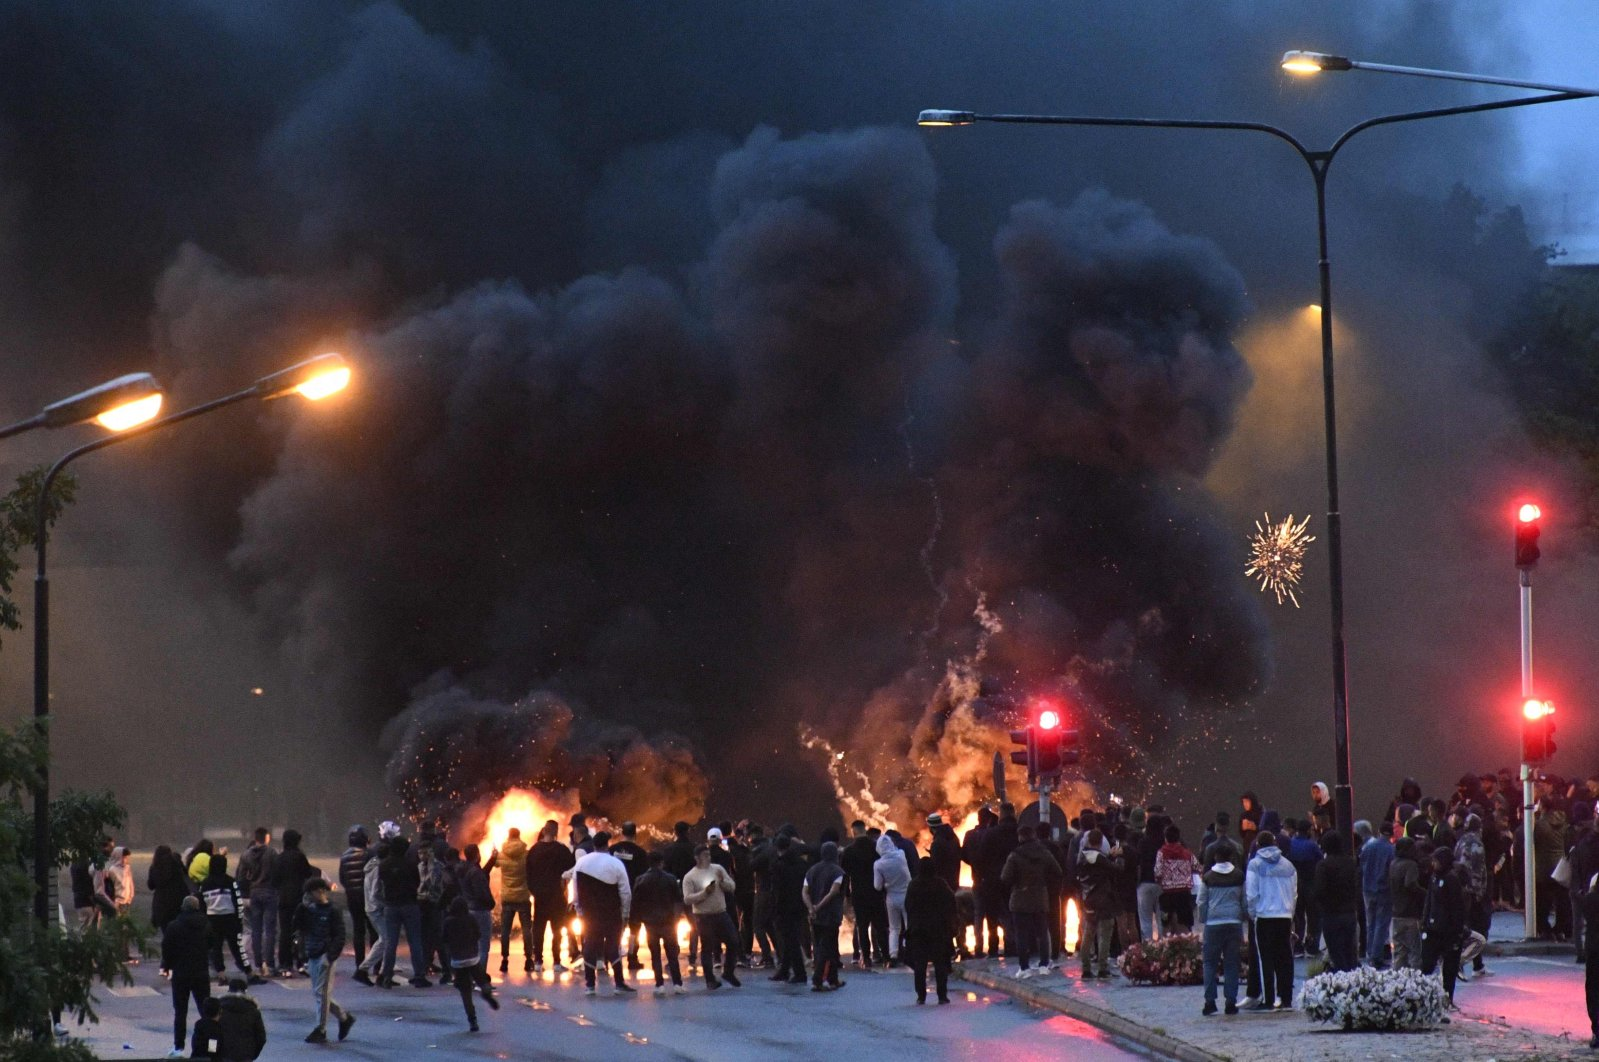 Smoke billows from burning tyres, pallets and fireworks as a few hundred protesters riot, which was sparked by the burning of a Quran, in the Rosengard neighborhood of Malmo, Sweden, Aug. 28, 2020. (AFP)